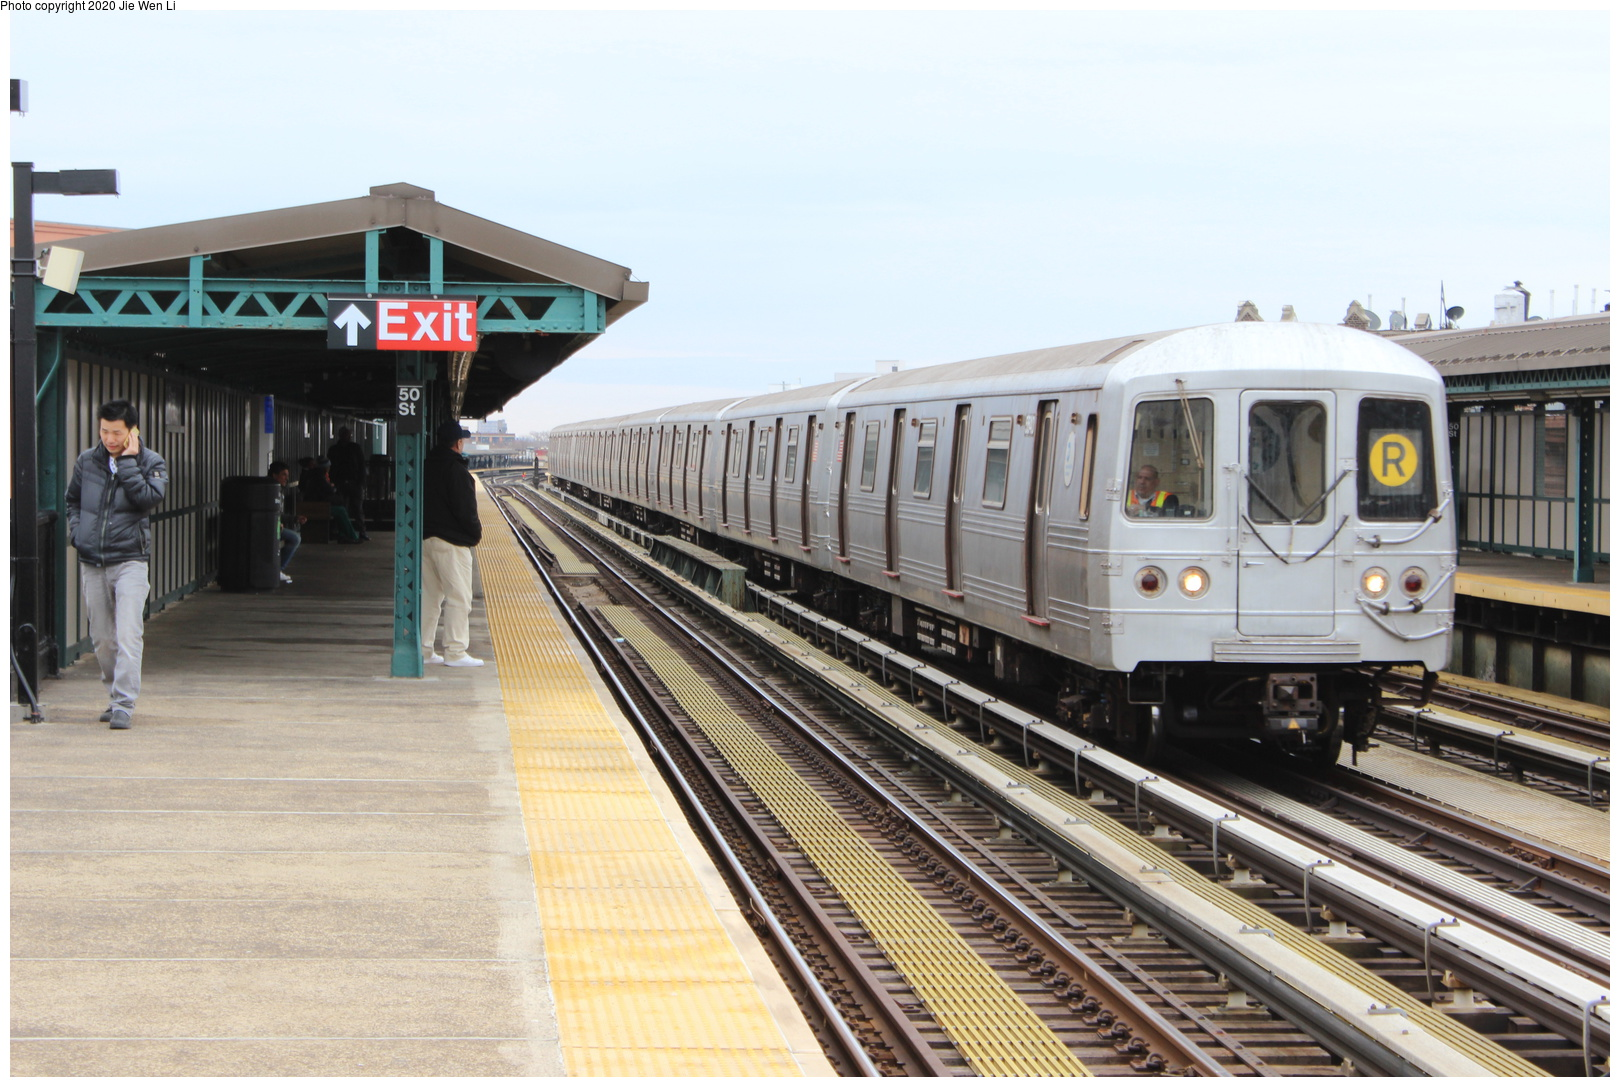 (188k, 1044x694)<br><b>Country:</b> United States<br><b>City:</b> New York<br><b>System:</b> New York City Transit<br><b>Line:</b> IRT Flushing Line<br><b>Location:</b> 46th Street/Bliss Street <br><b>Car:</b> Low-V Worlds Fair  <br><b>Photo by:</b> Joel Shanus<br><b>Viewed (this week/total):</b> 6 / 2482